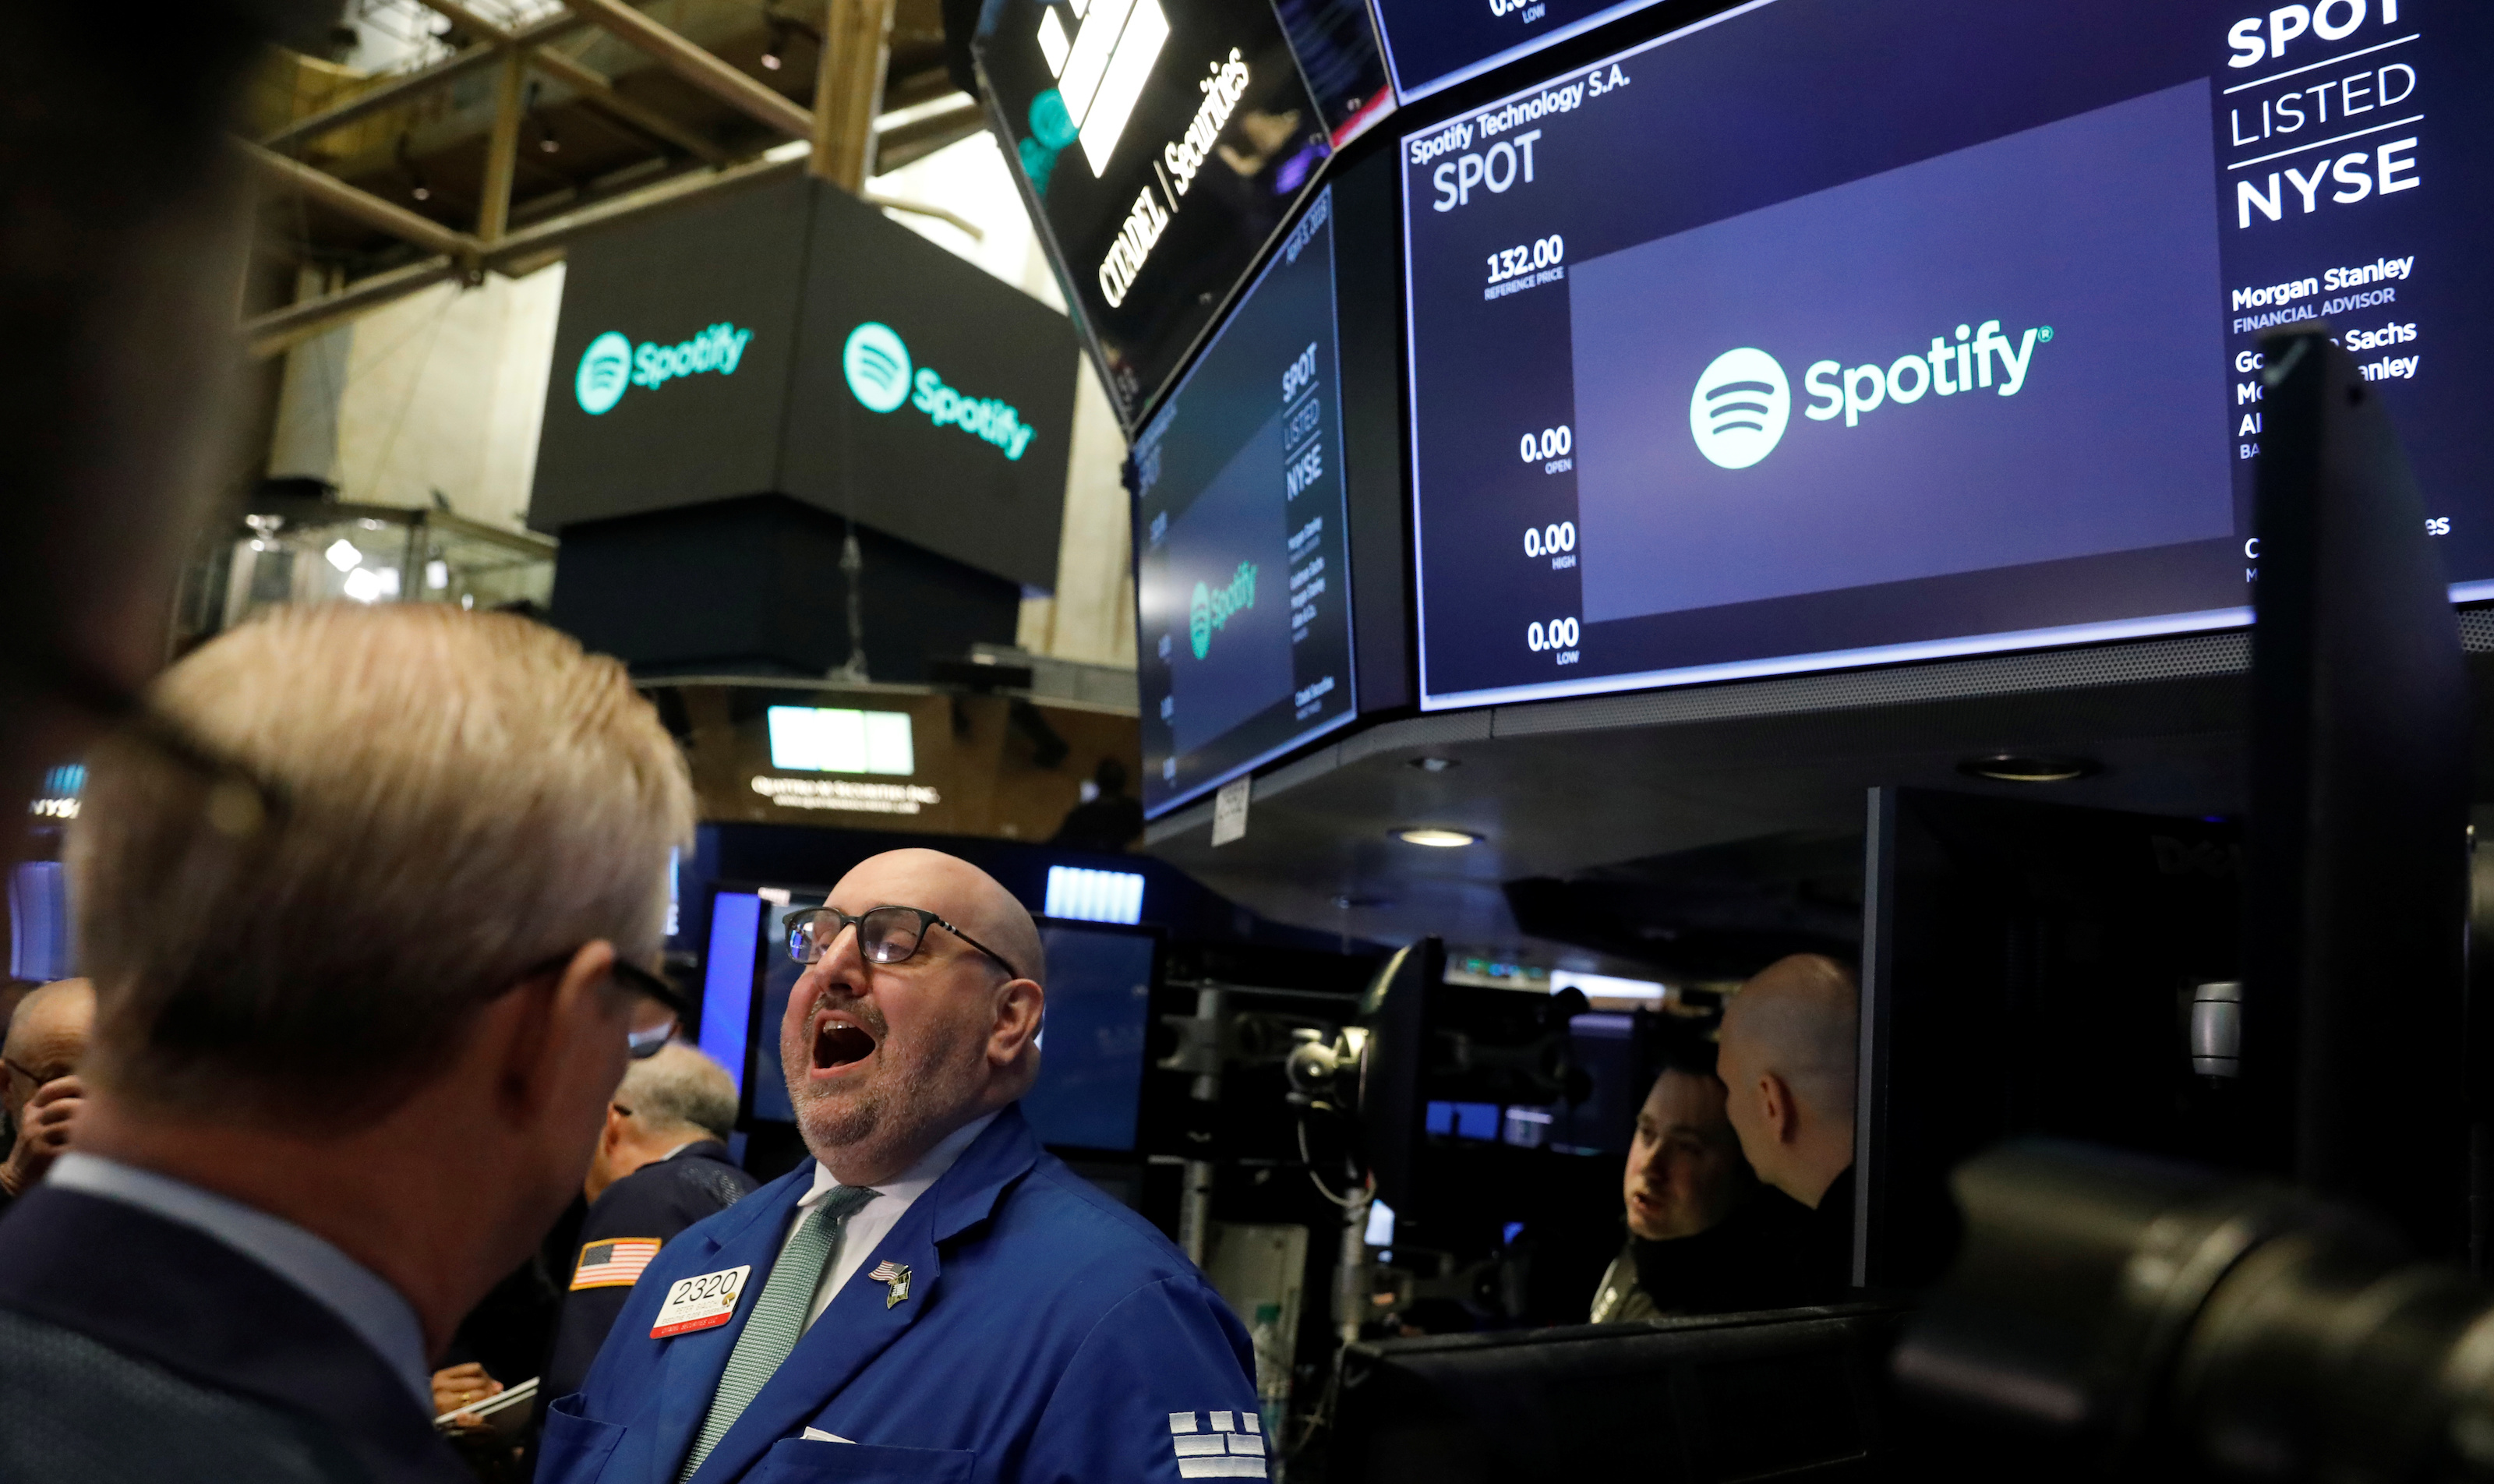 A price update is given on shares of Spotify before the company's direct listing on the floor of the New York Stock Exchange in New York, U.S., April 3, 2018. REUTERS/Lucas Jackson - RC178CA0BBE0